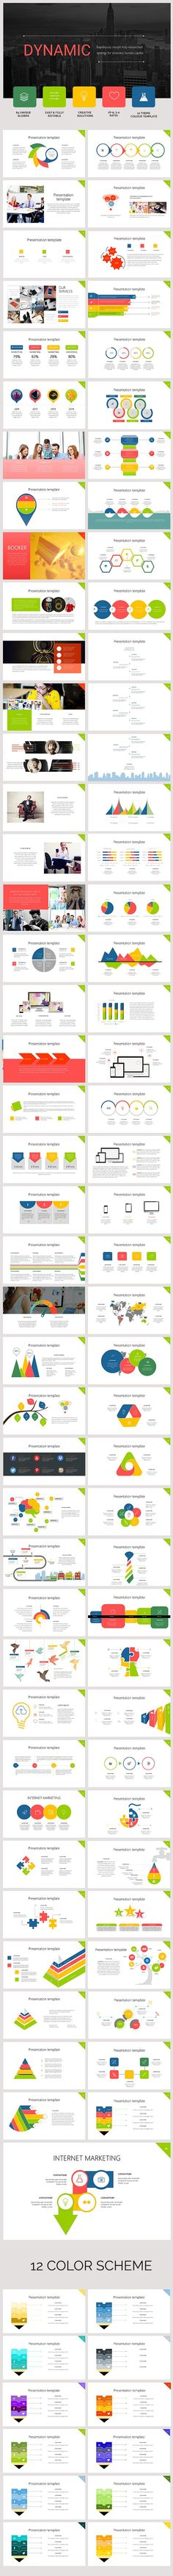 Dynamic presentation template  by oyunerdene99 on @Graphicsauthor